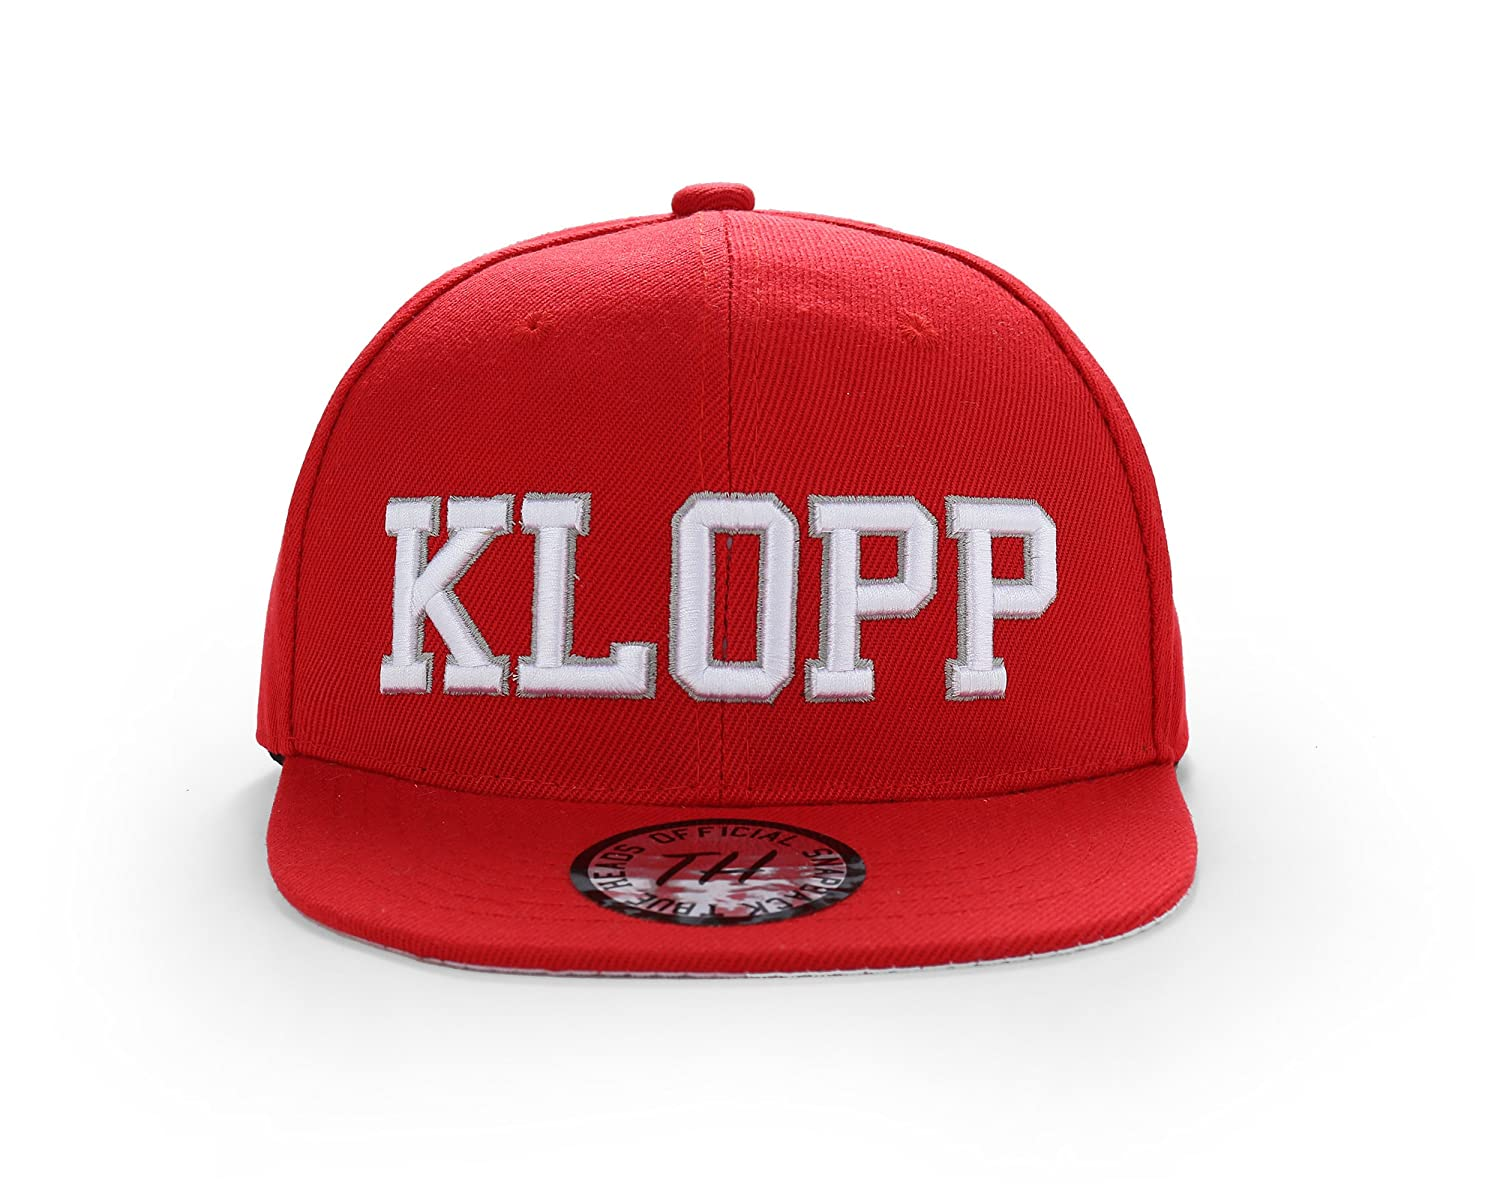 0a42f234c52 Jürgen Klopp Football Snapback Baseball Cap  Amazon.co.uk  Sports   Outdoors